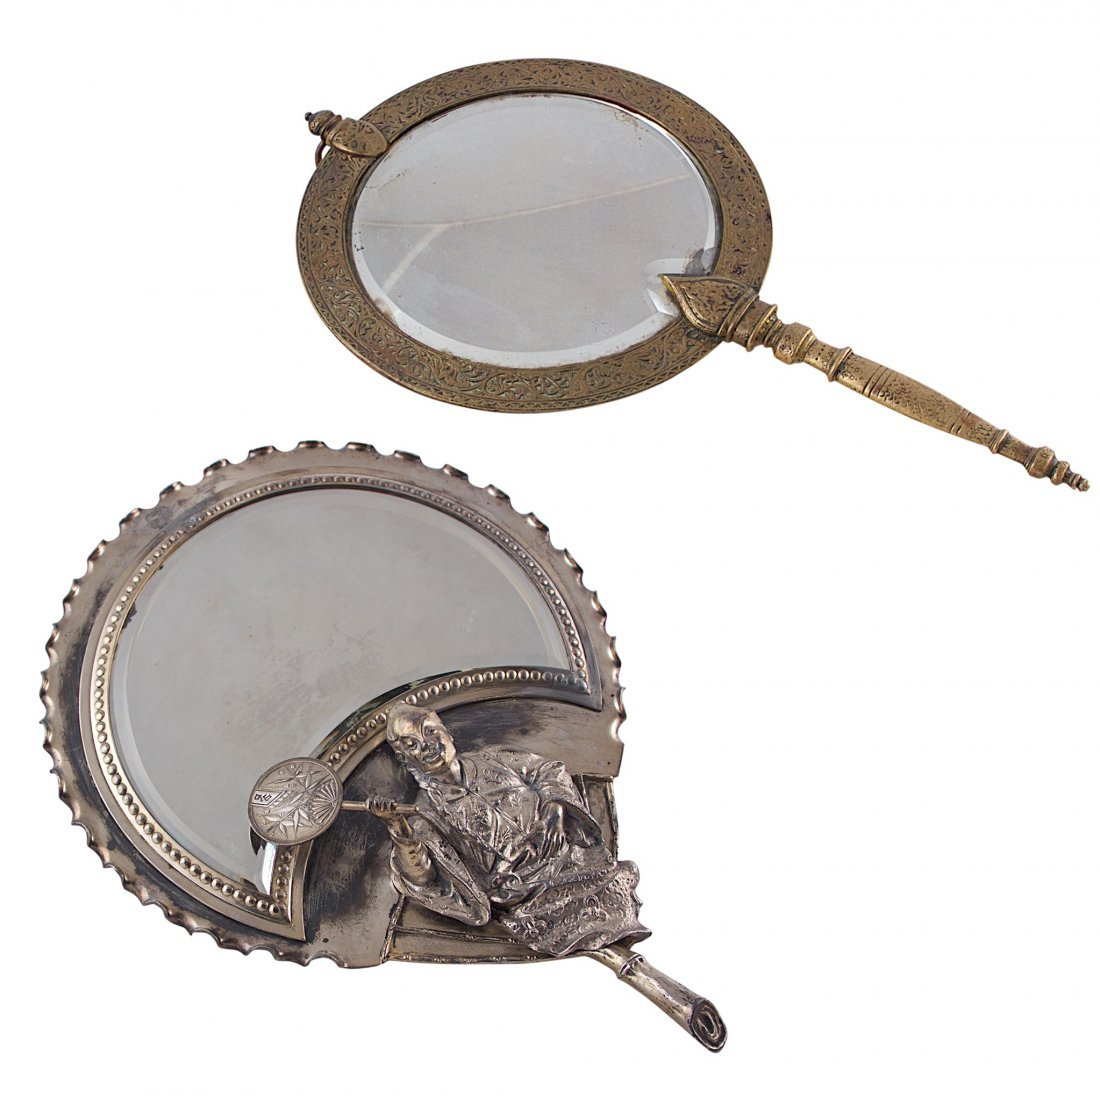 Hand mirror Cute Bronze Hand Mirror English Mirror Liveauctioneers Tiffany And Co Bronze Hand Mirror English Mirror